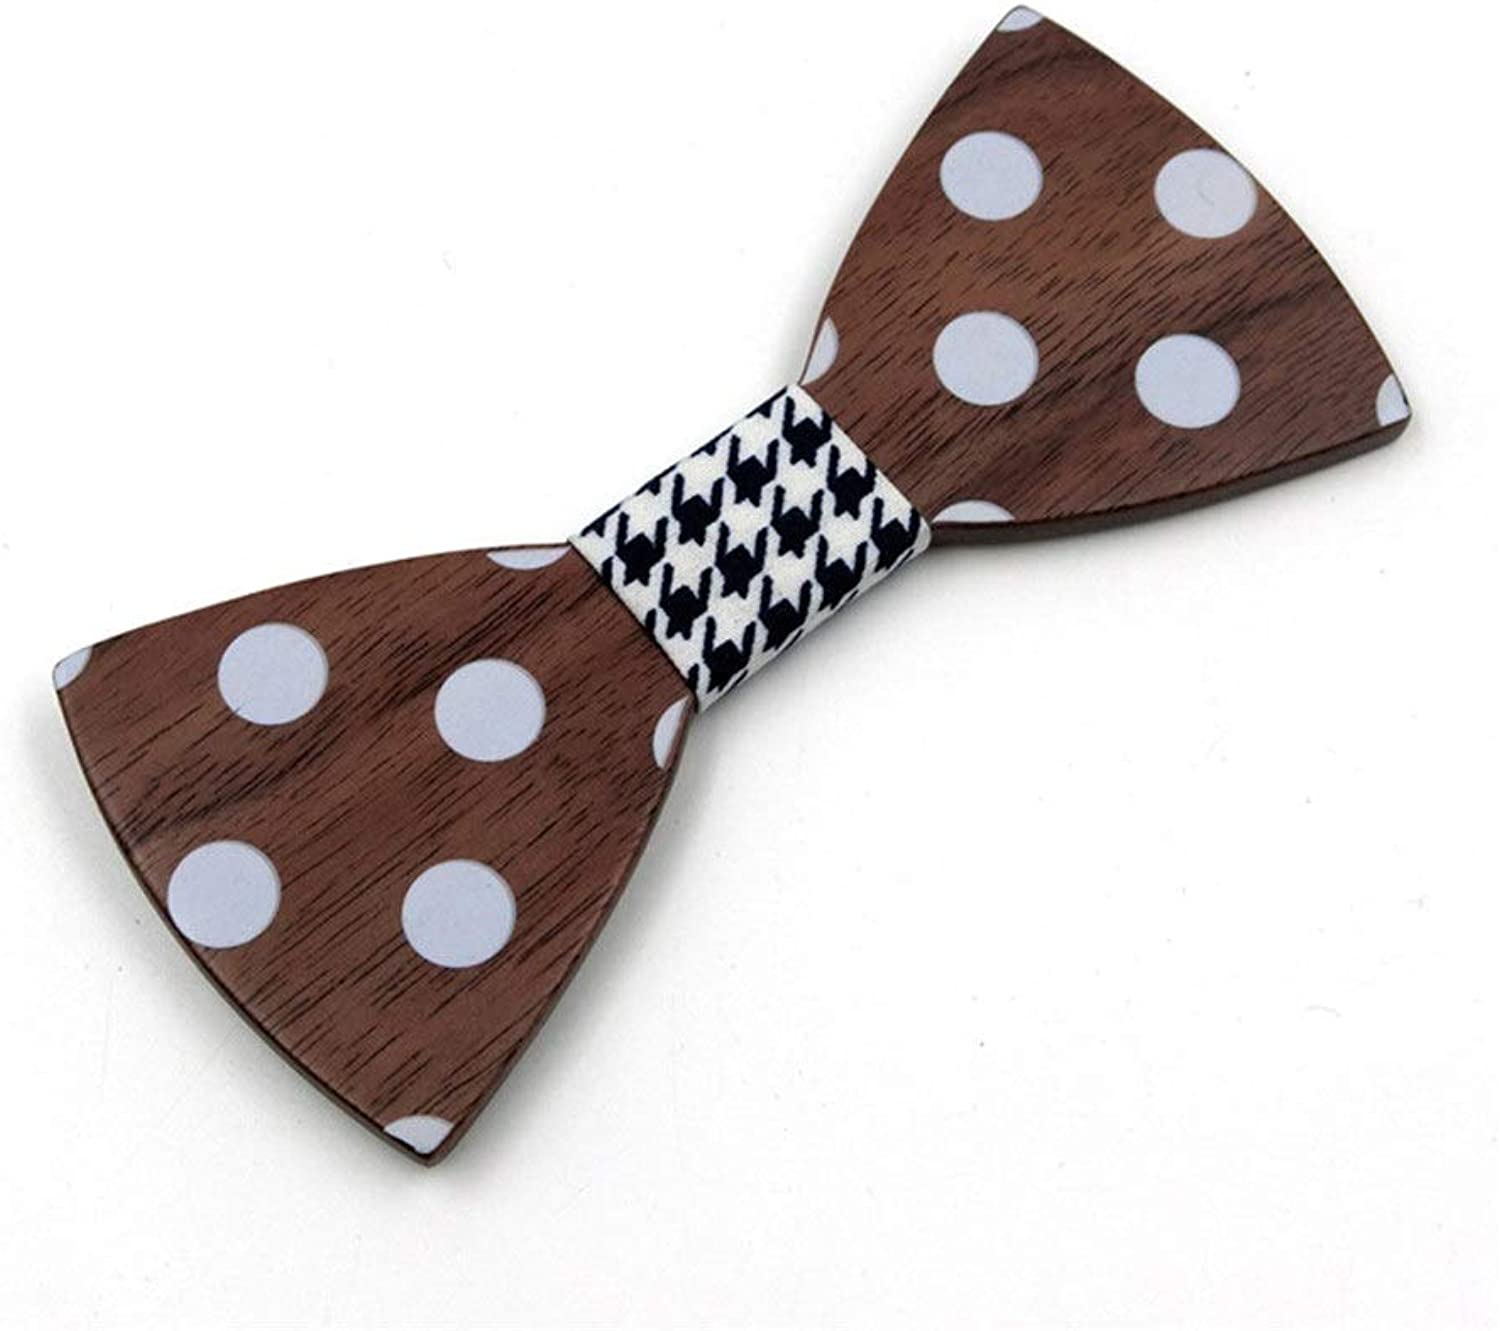 64db598d2f Necktie Contracted Wave Point Solid Wooden Bow Tie Log Log Log Wood Tie  Restoring Ancient Ways Pure Manual Leisure Neckties Bow Tie Men's and  Women's c3c9d9